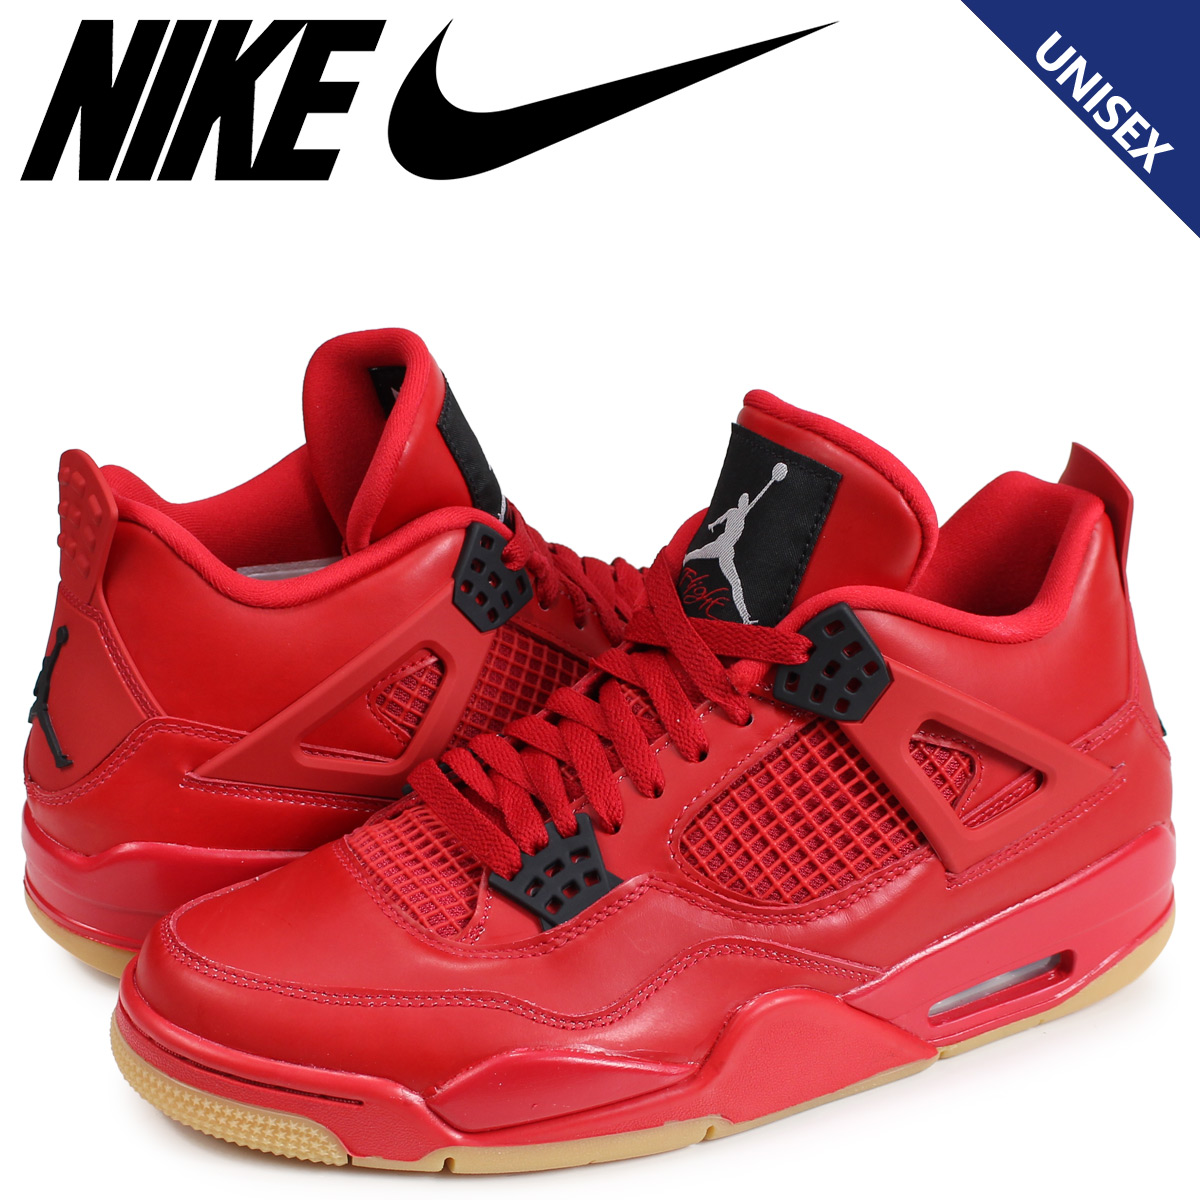 359e6fd2c9c3 NIKE WMNS AIR JORDAN 4 RETRO NRG SINGLES DAY Nike Air Jordan 4 nostalgic  sneakers Lady s men red AV3914-600